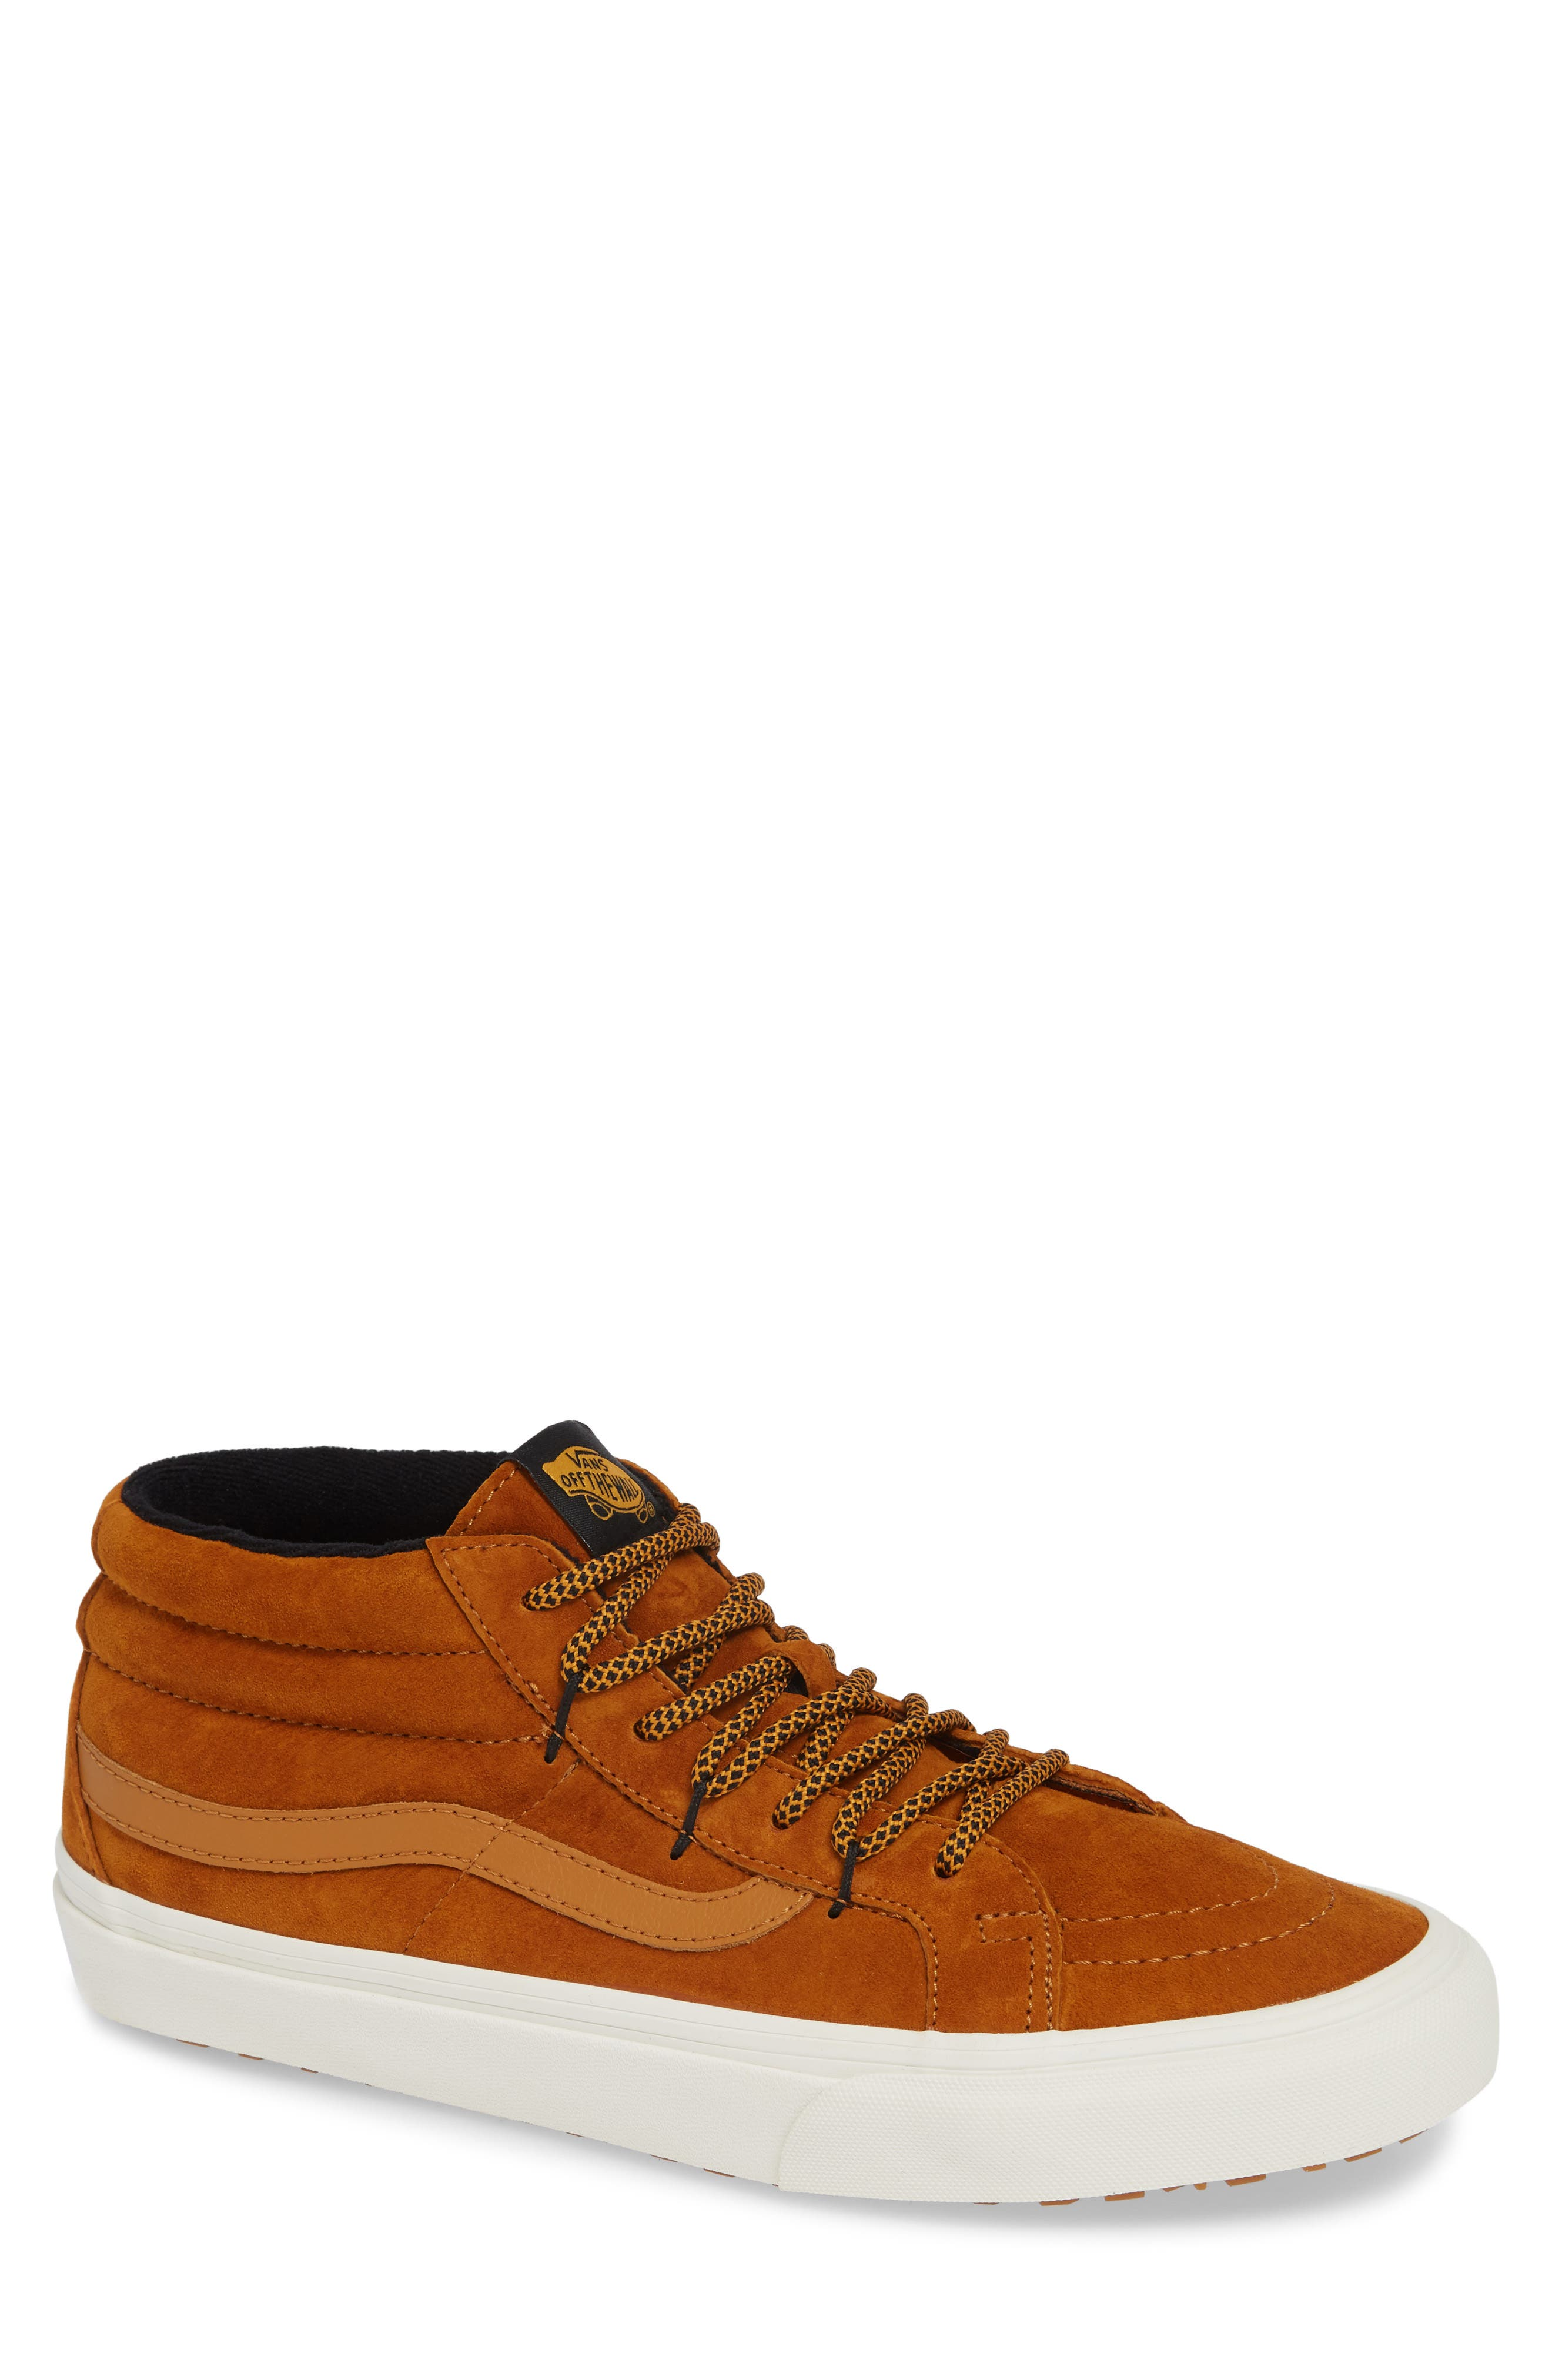 SK8-Hi Mid Reissue Ghillie MTE Sneaker,                         Main,                         color, BROWN/ MARSHMALLOW